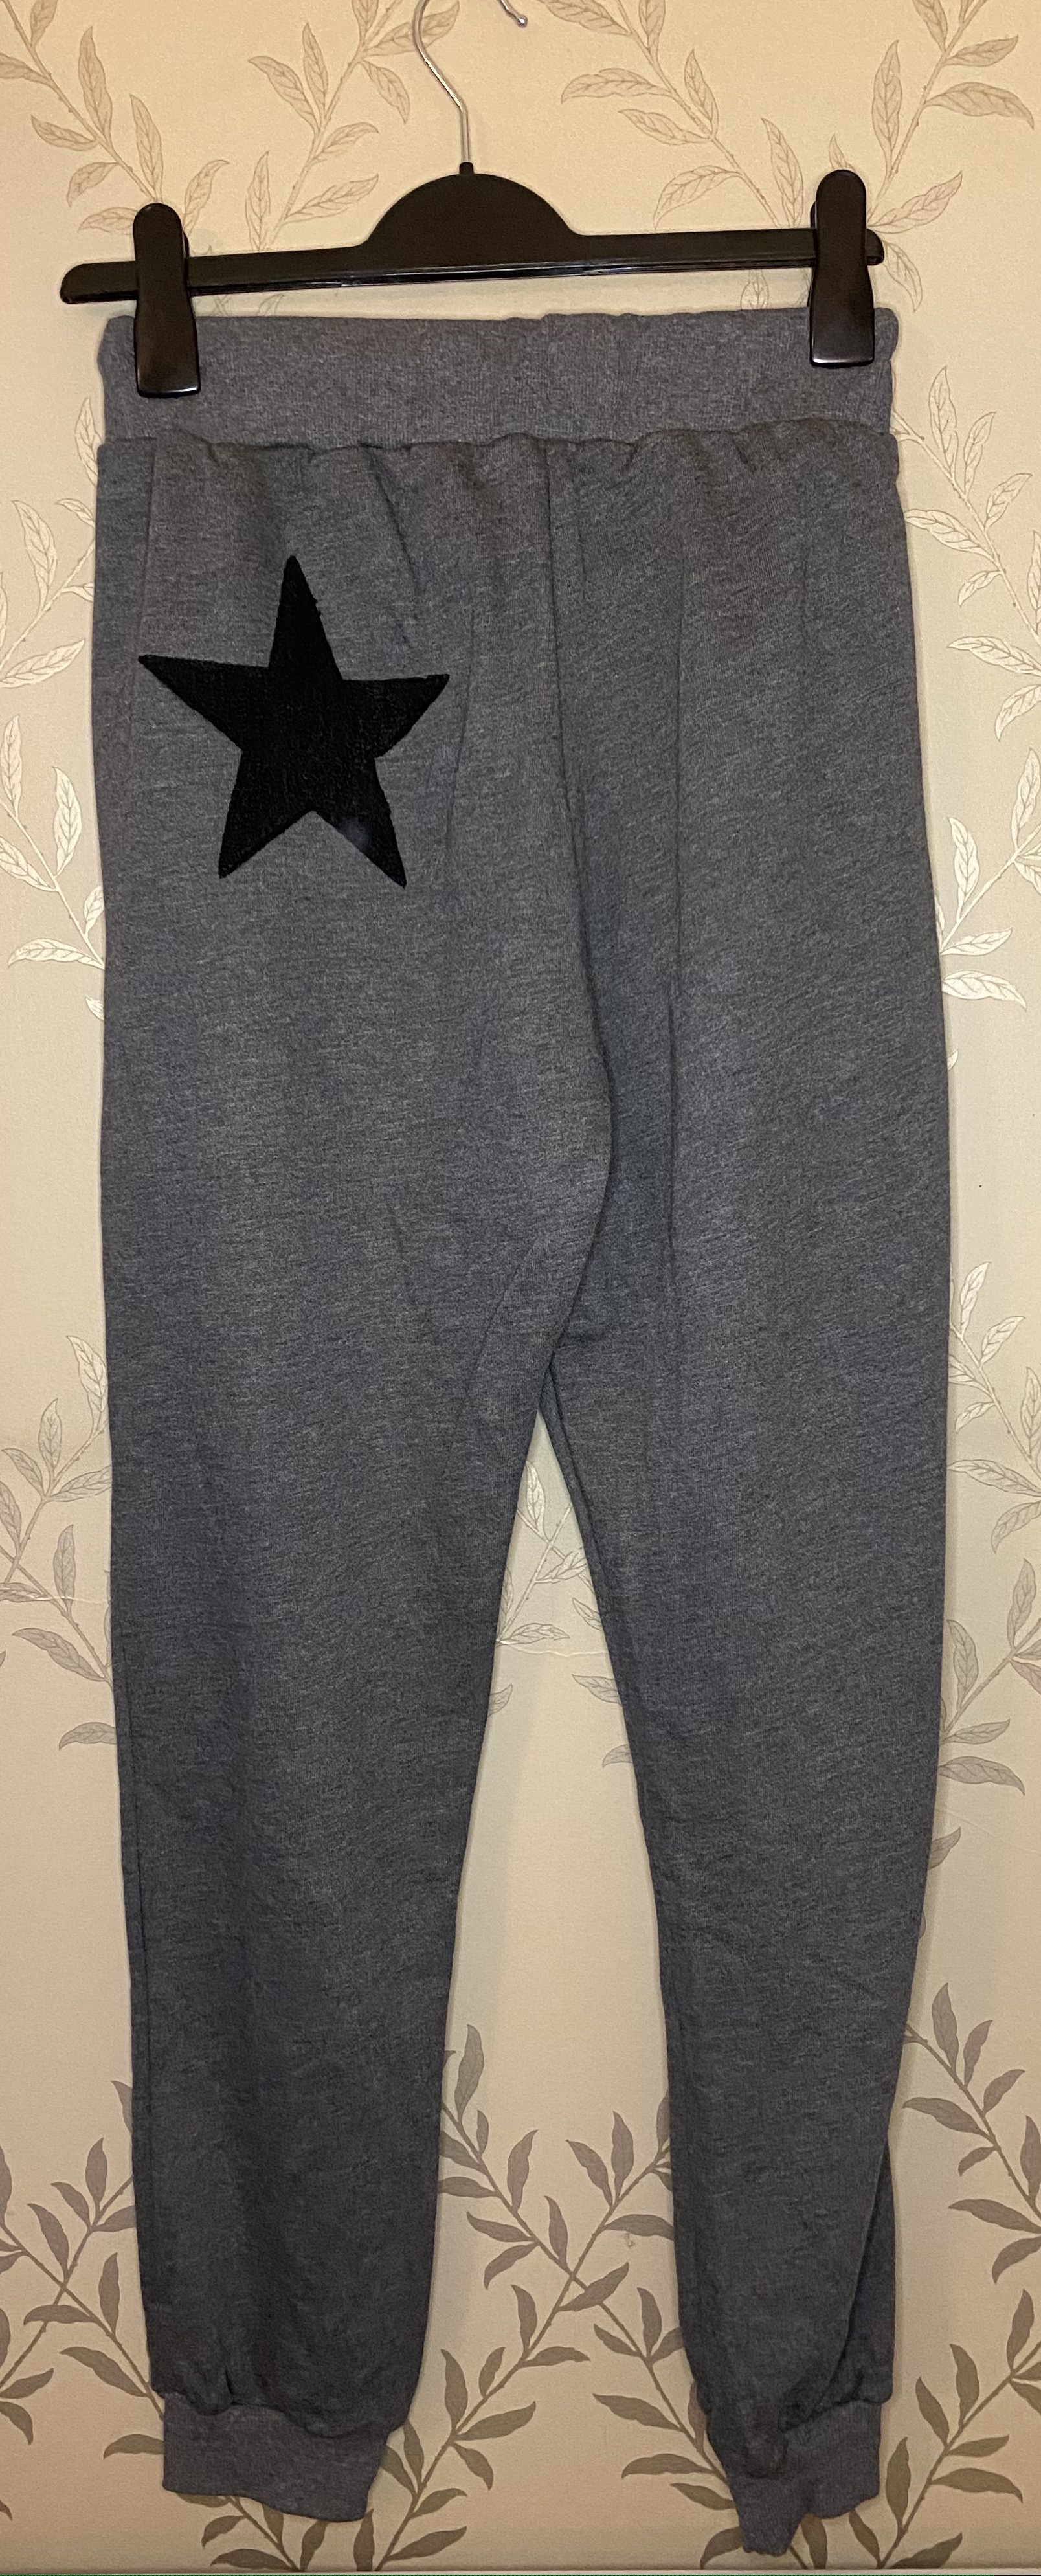 Terminal 1 tracksuit - Available in 2 Colours